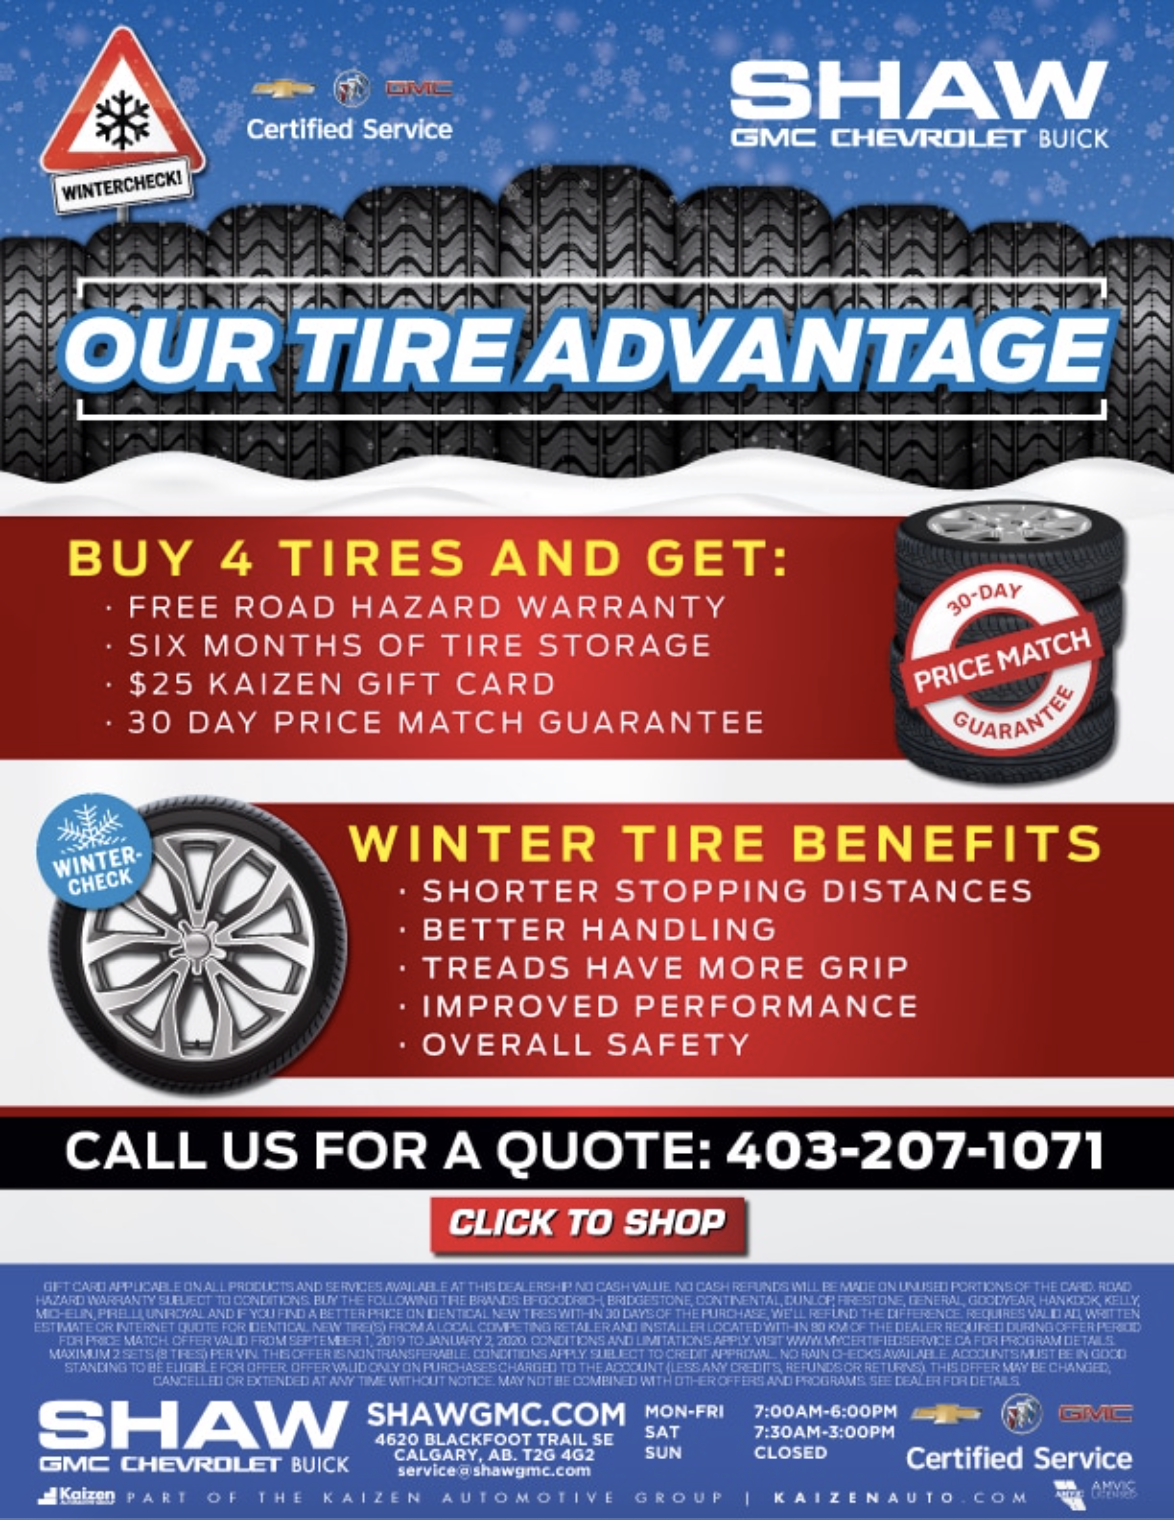 Tire Advantage